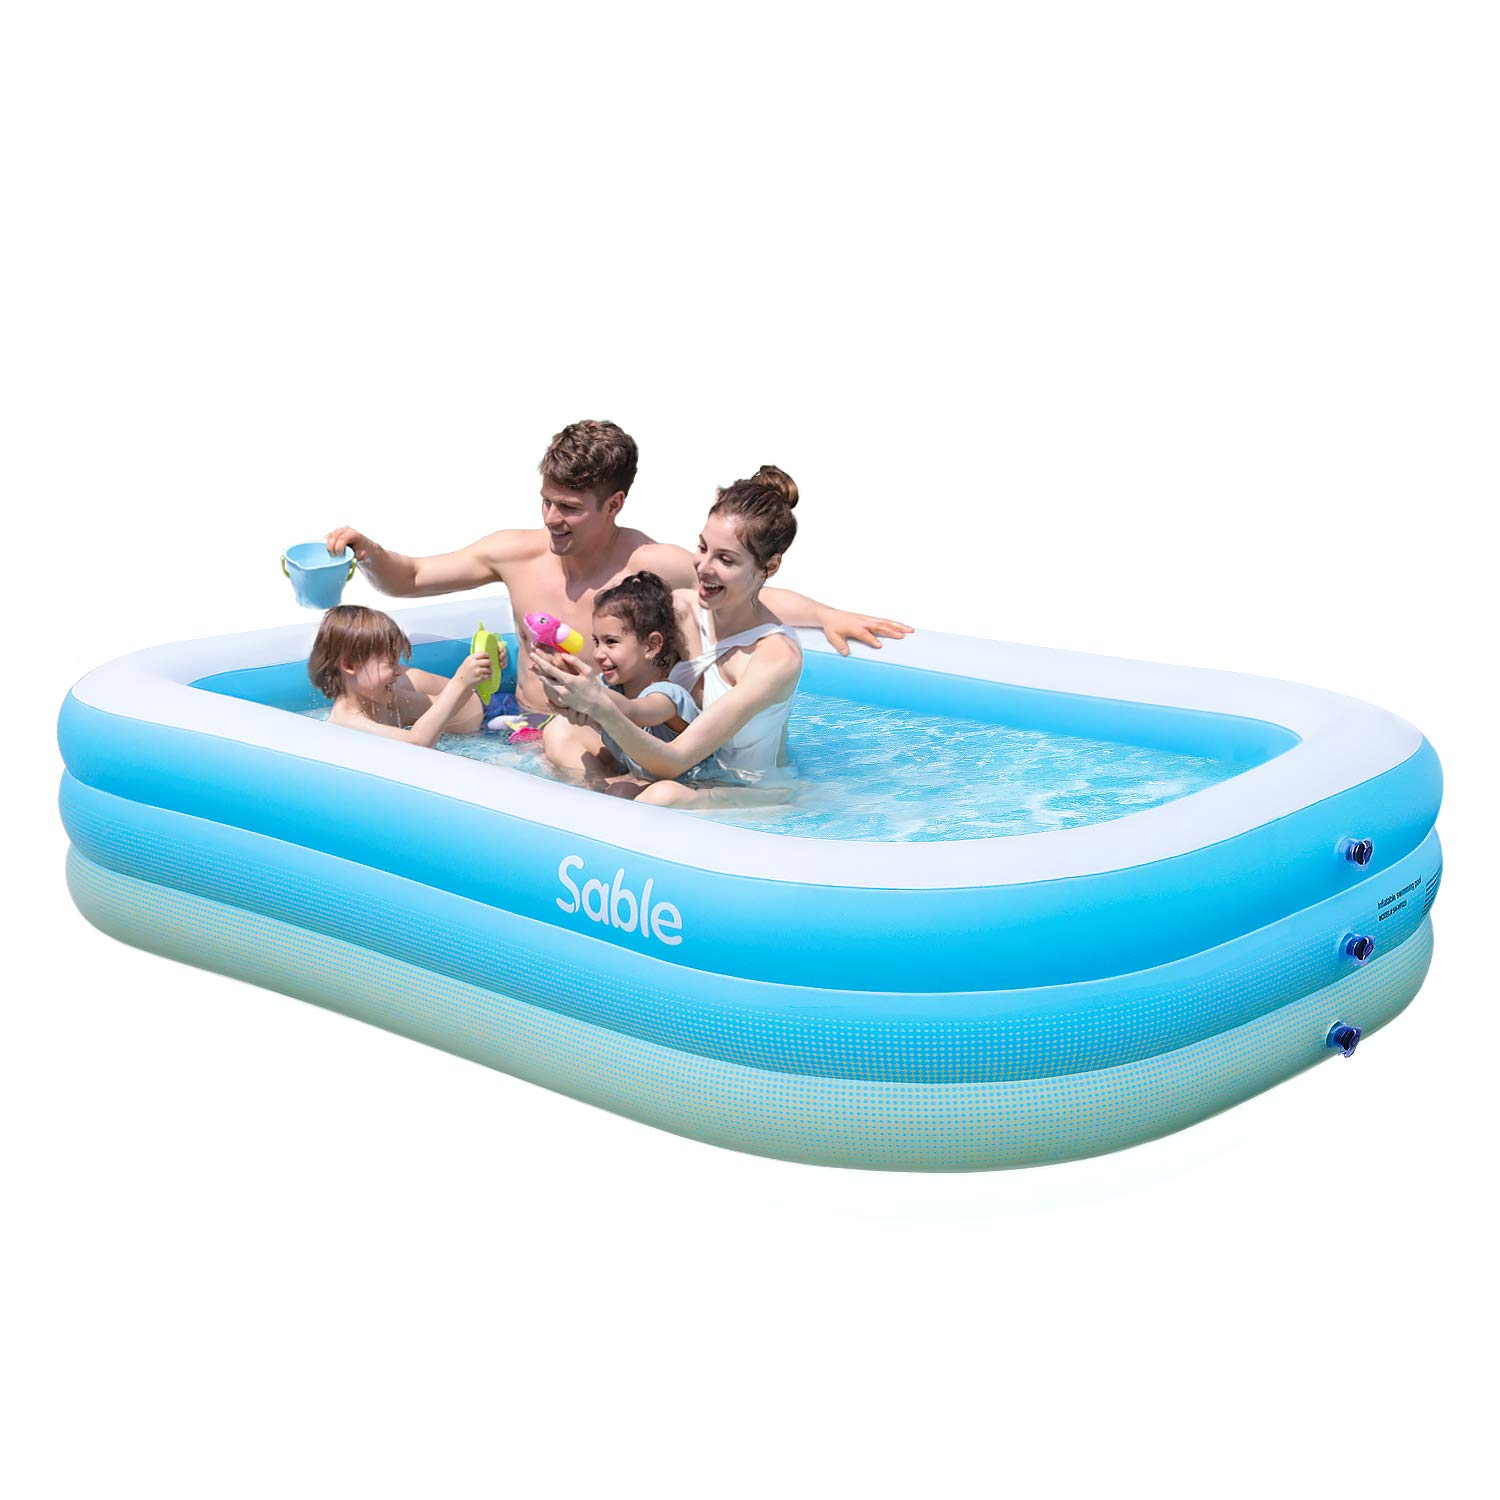 """Sable Inflatable Pool, Blow up Kiddie Pool for Family, Garden, Outdoor, Backyard, 92"""" X 56"""" X 20"""", for Ages 3+"""